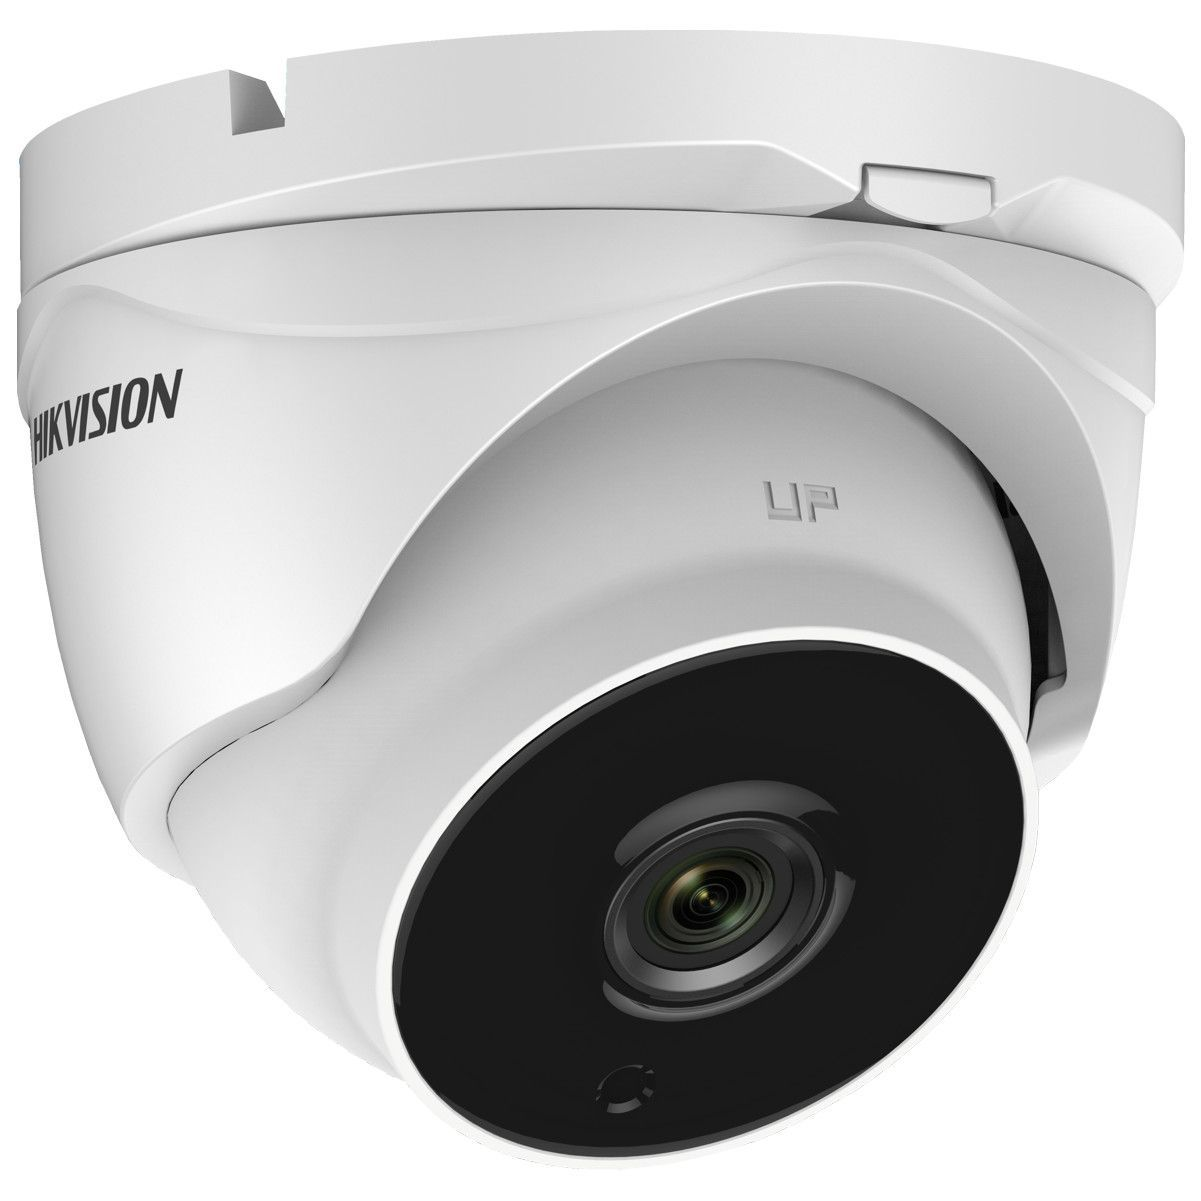 Fotografie Camera Supraveghere IP Hikvision DS-2CE56D8T-IT3ZF, 2MP, CMOS, 2.7-13.5MM, IR 60m, 25fps